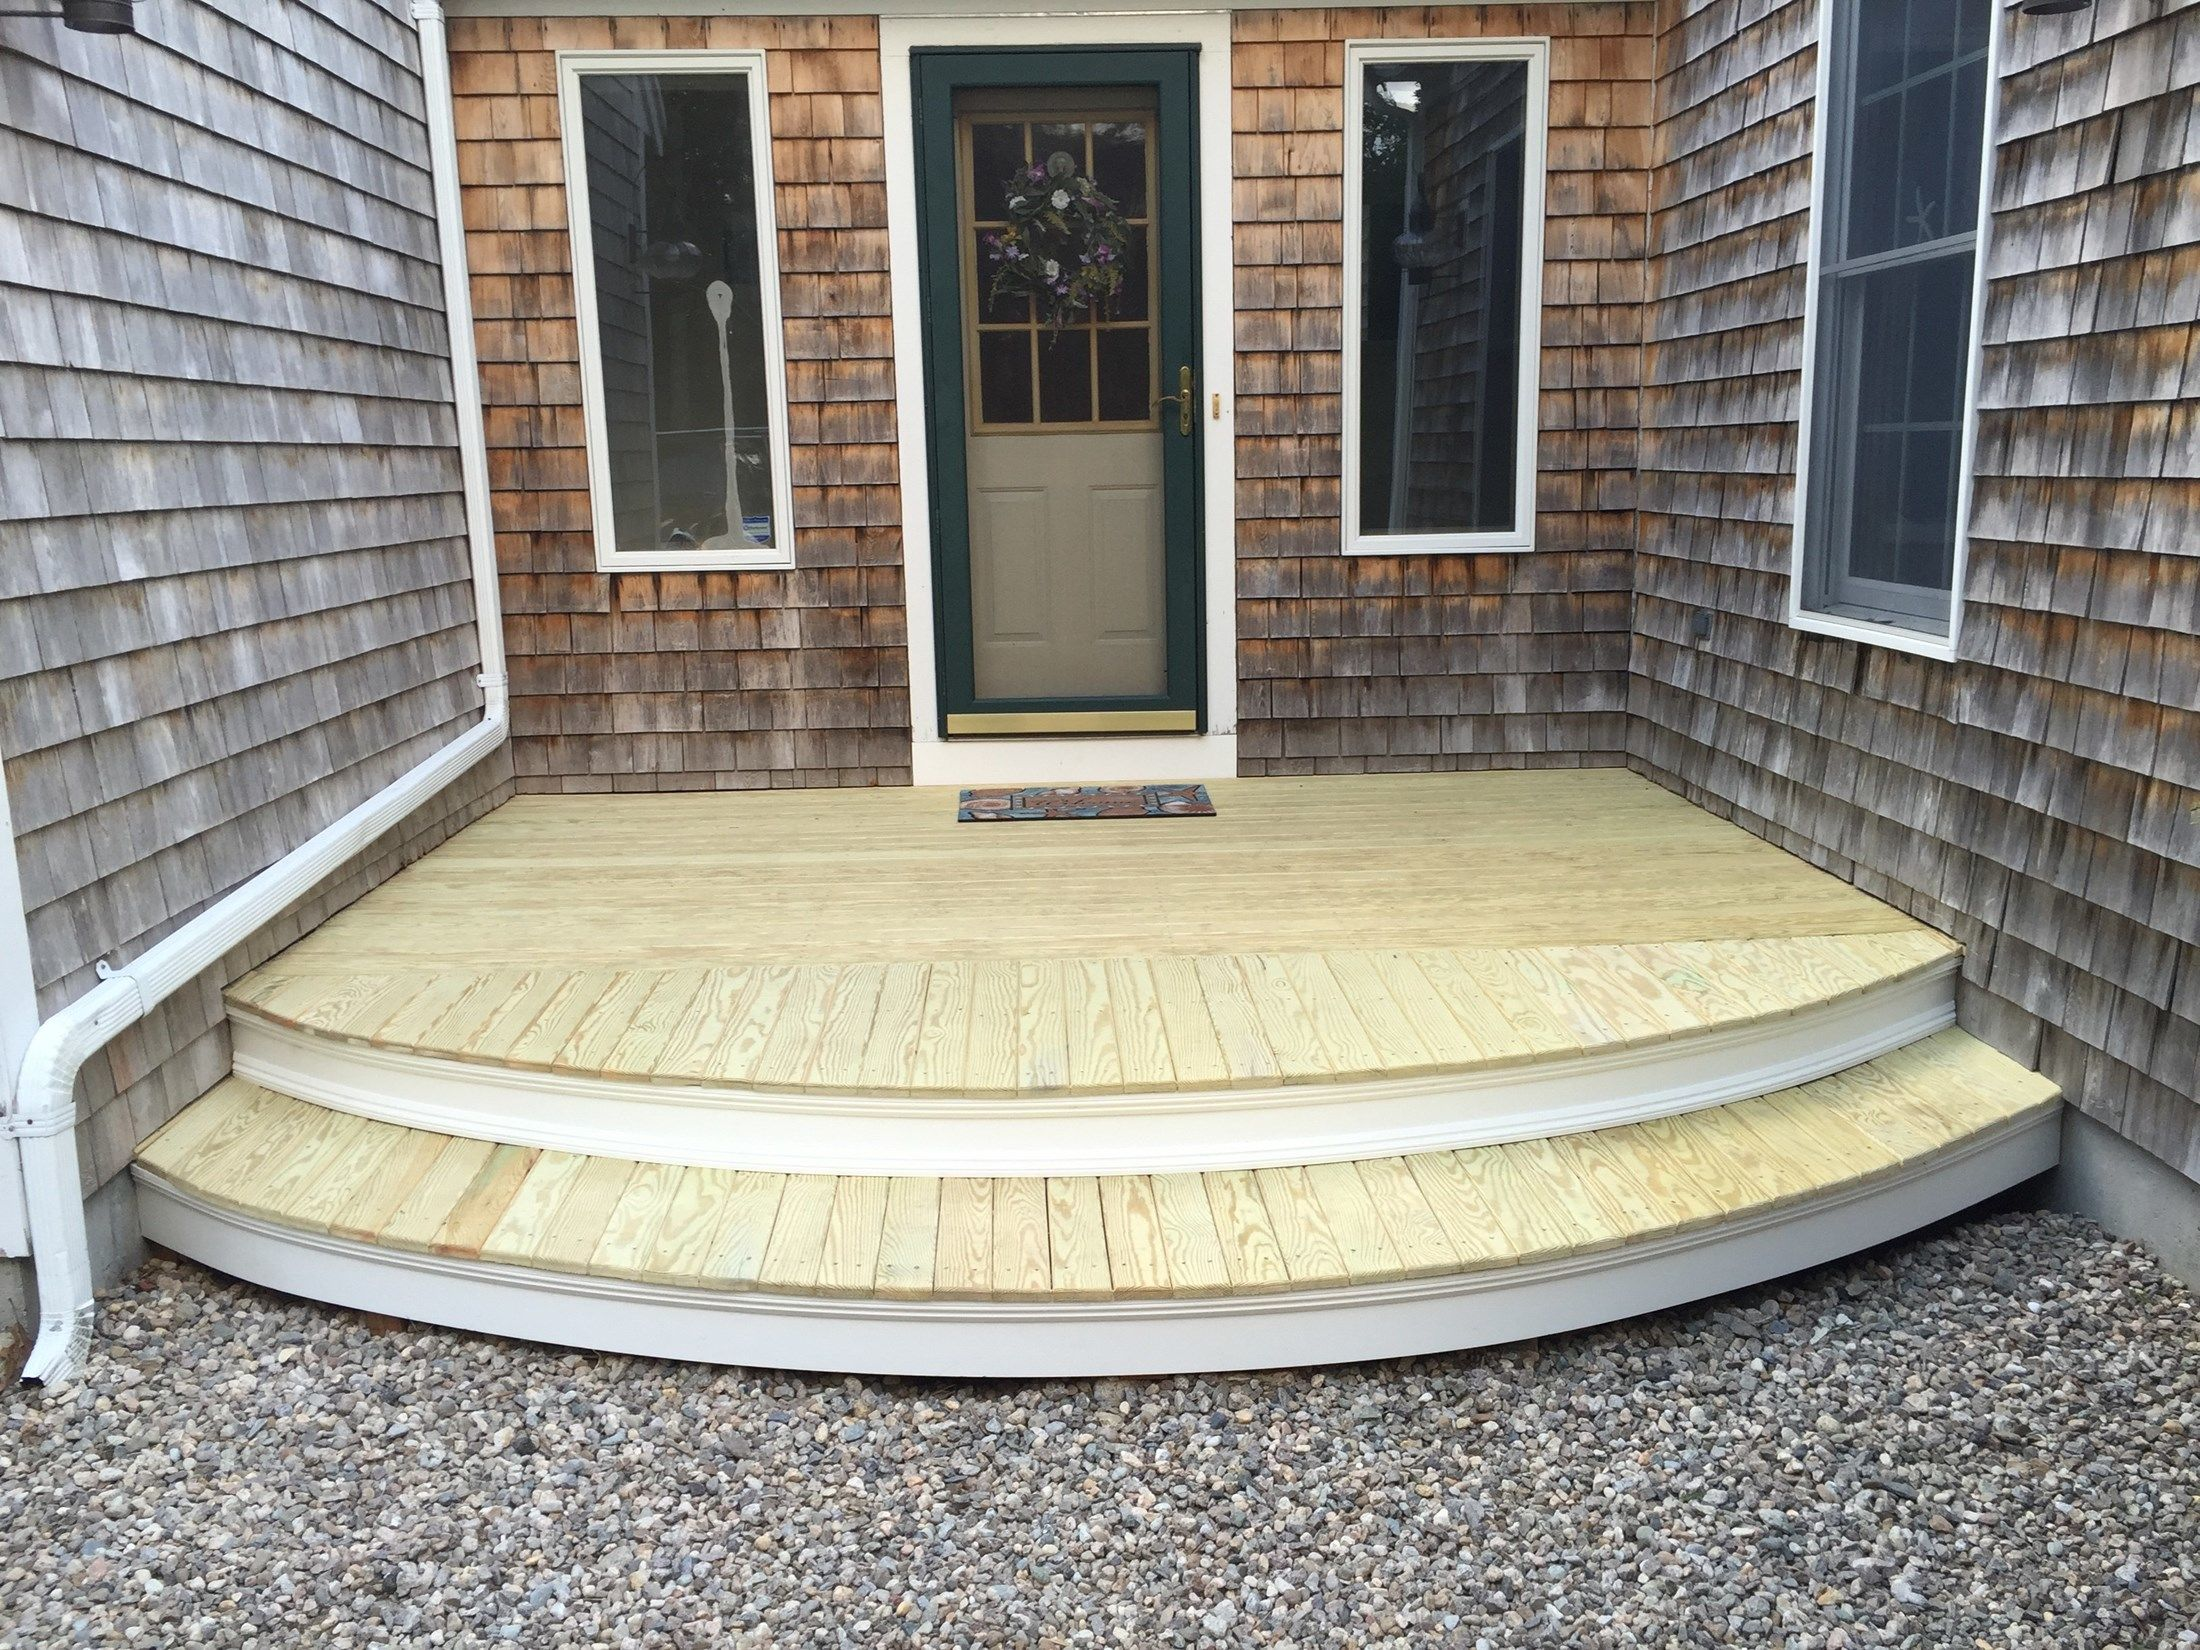 Cape Cod Clam Shell Deck - Picture 6229